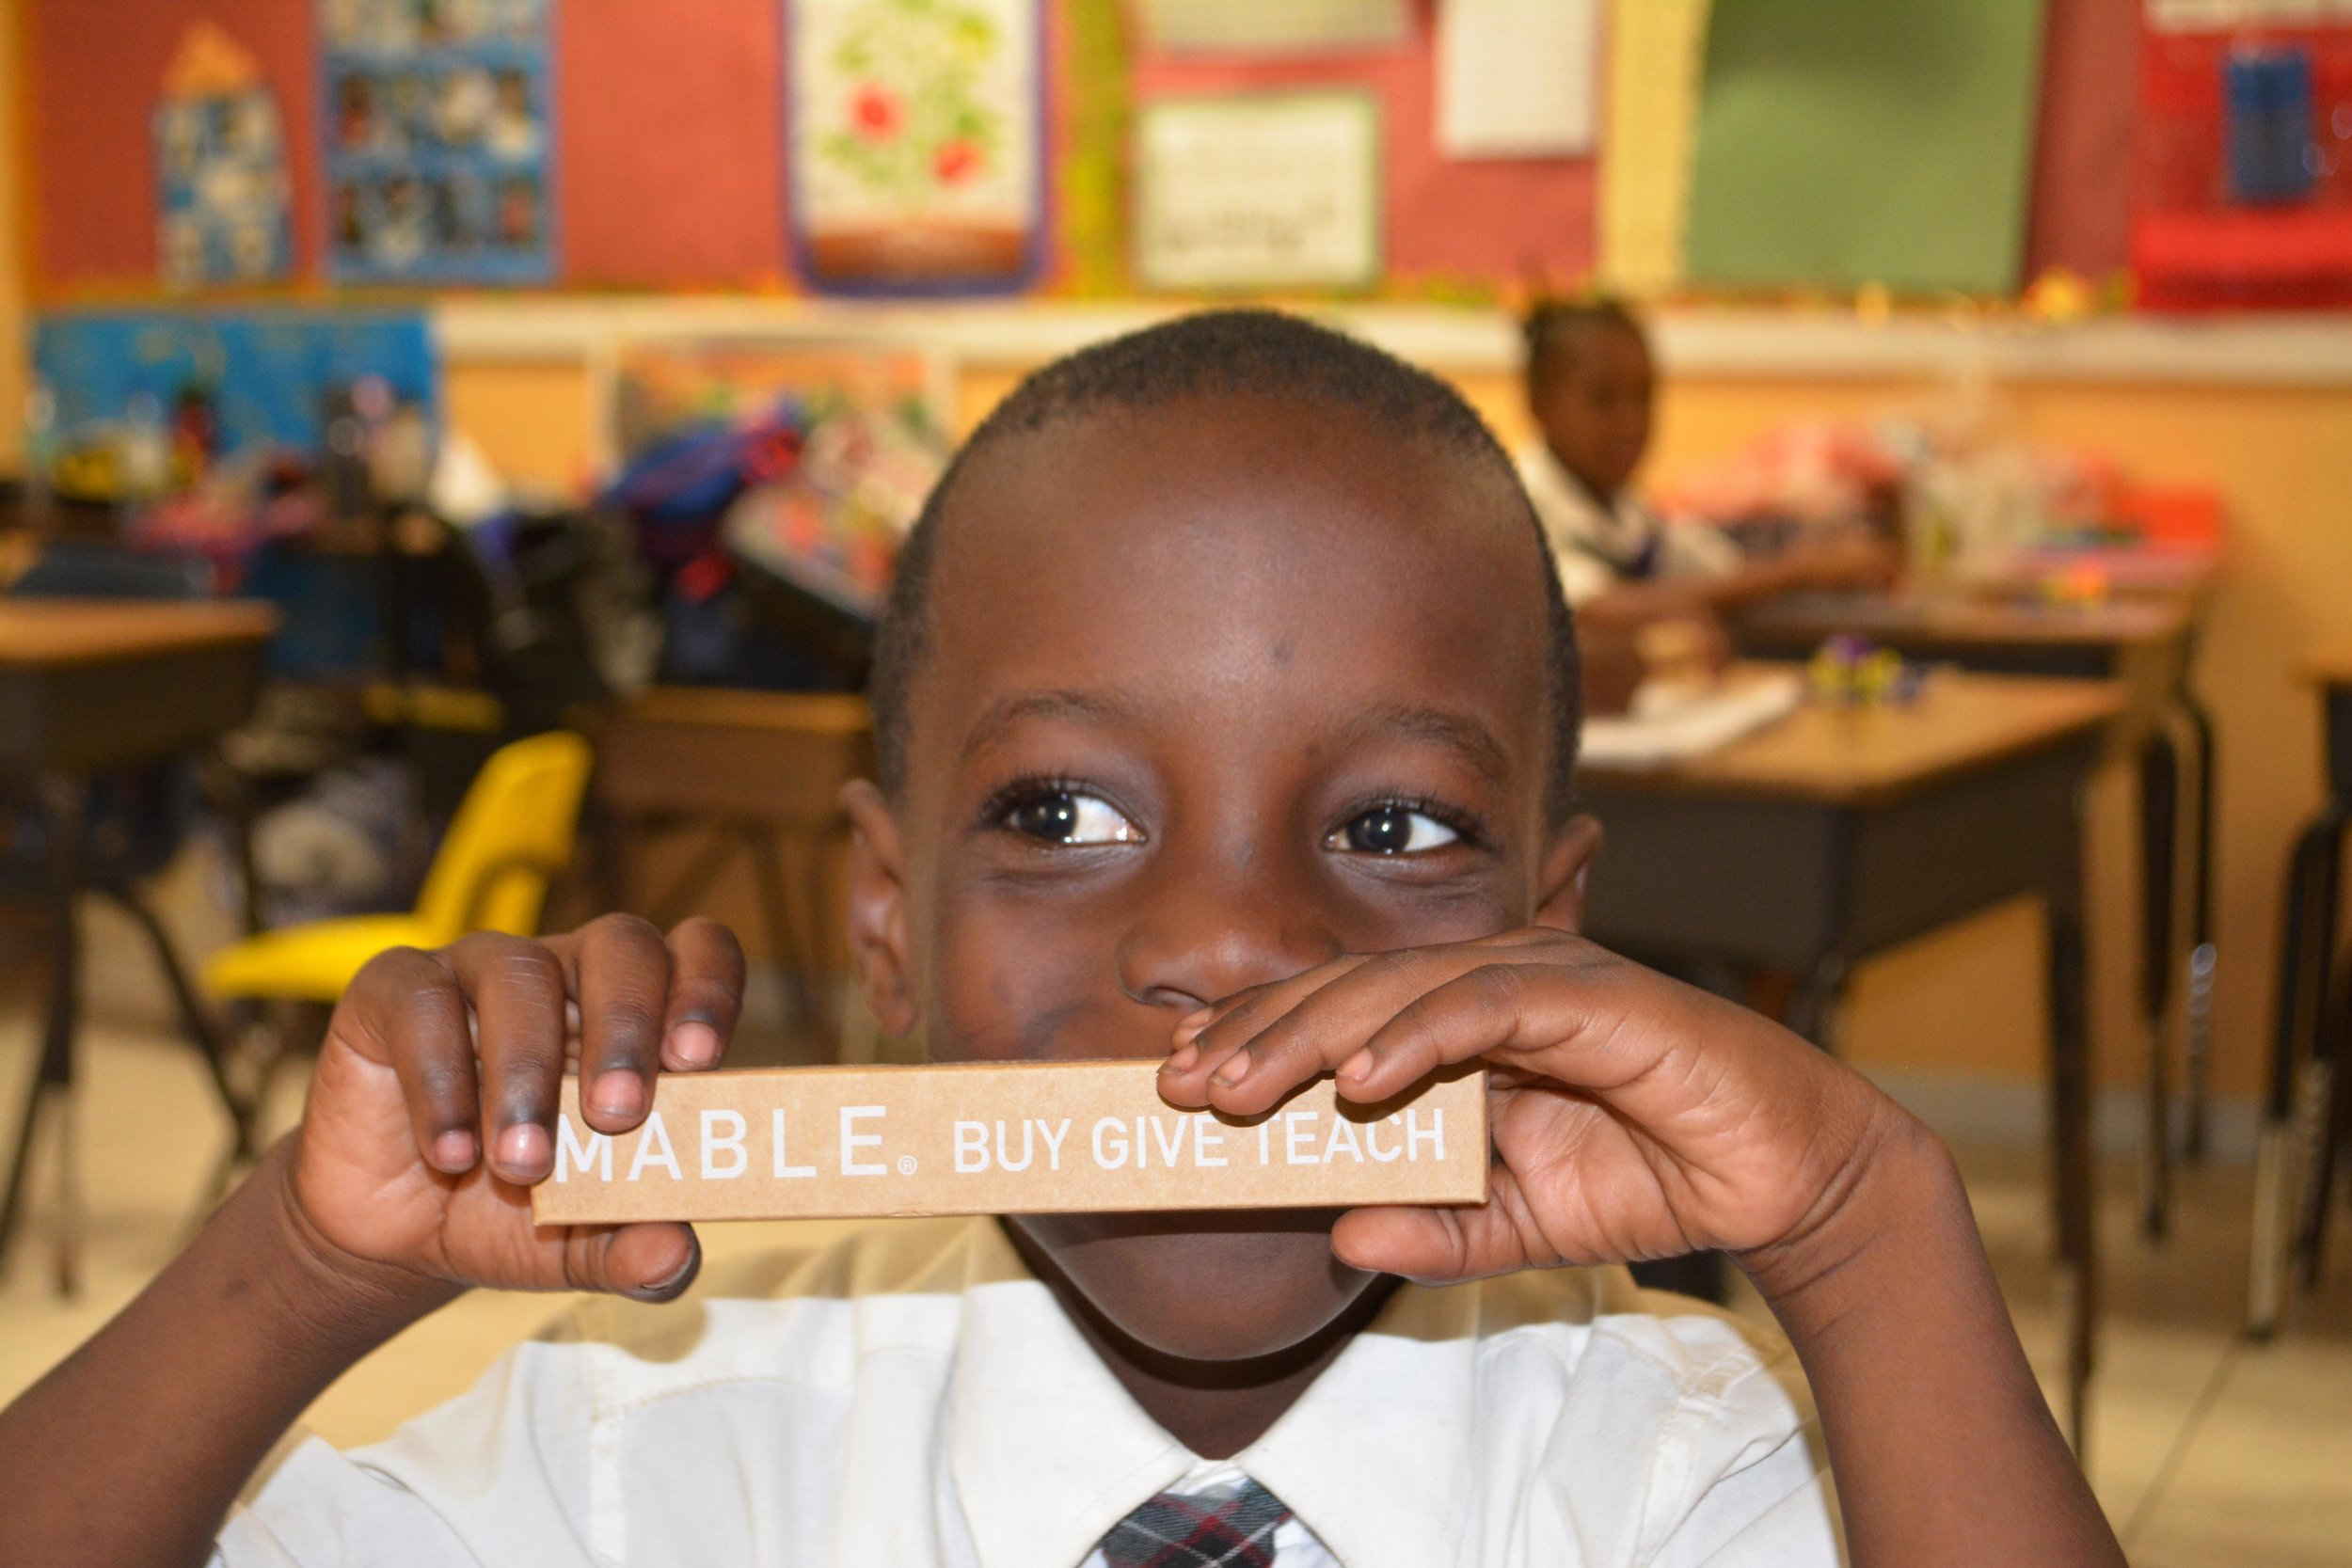 A Behring Point Primary School student holds his new, environmentally friendly gift